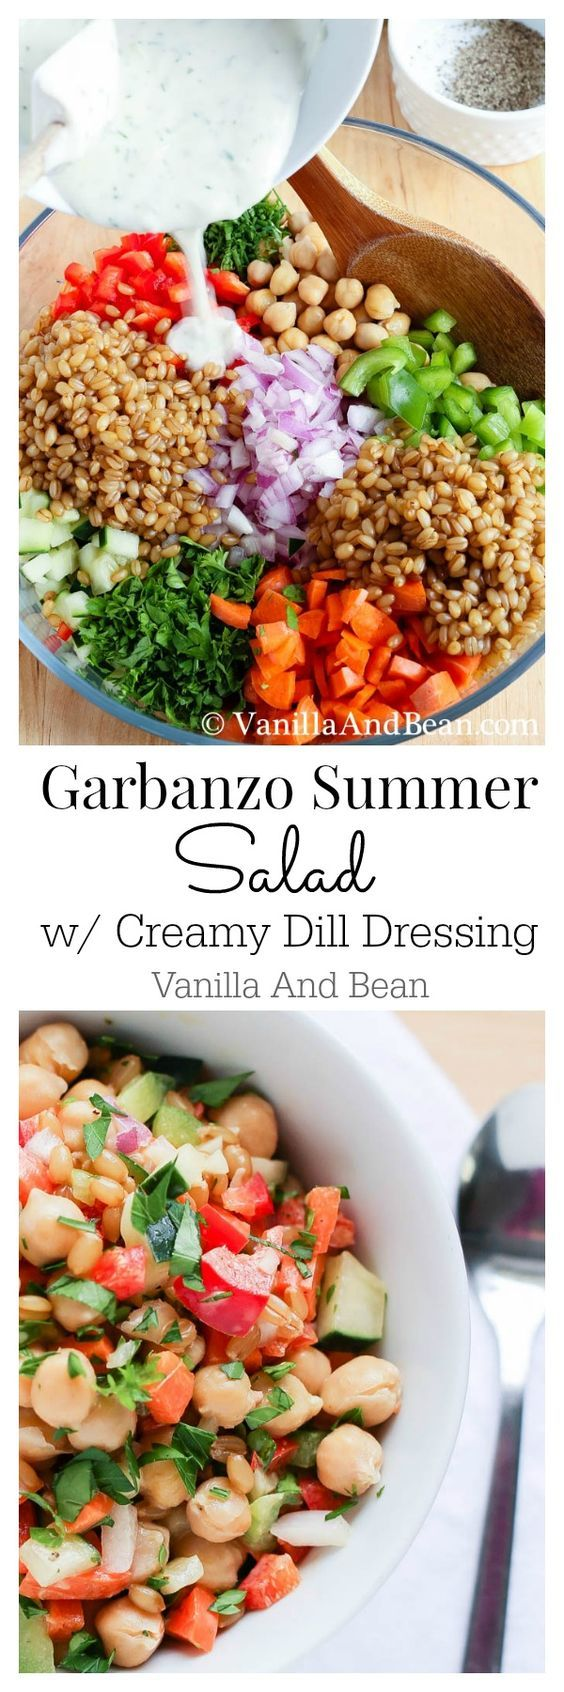 Garbanzo (Chickpea) Summer Salad with Creamy Dill Dressing